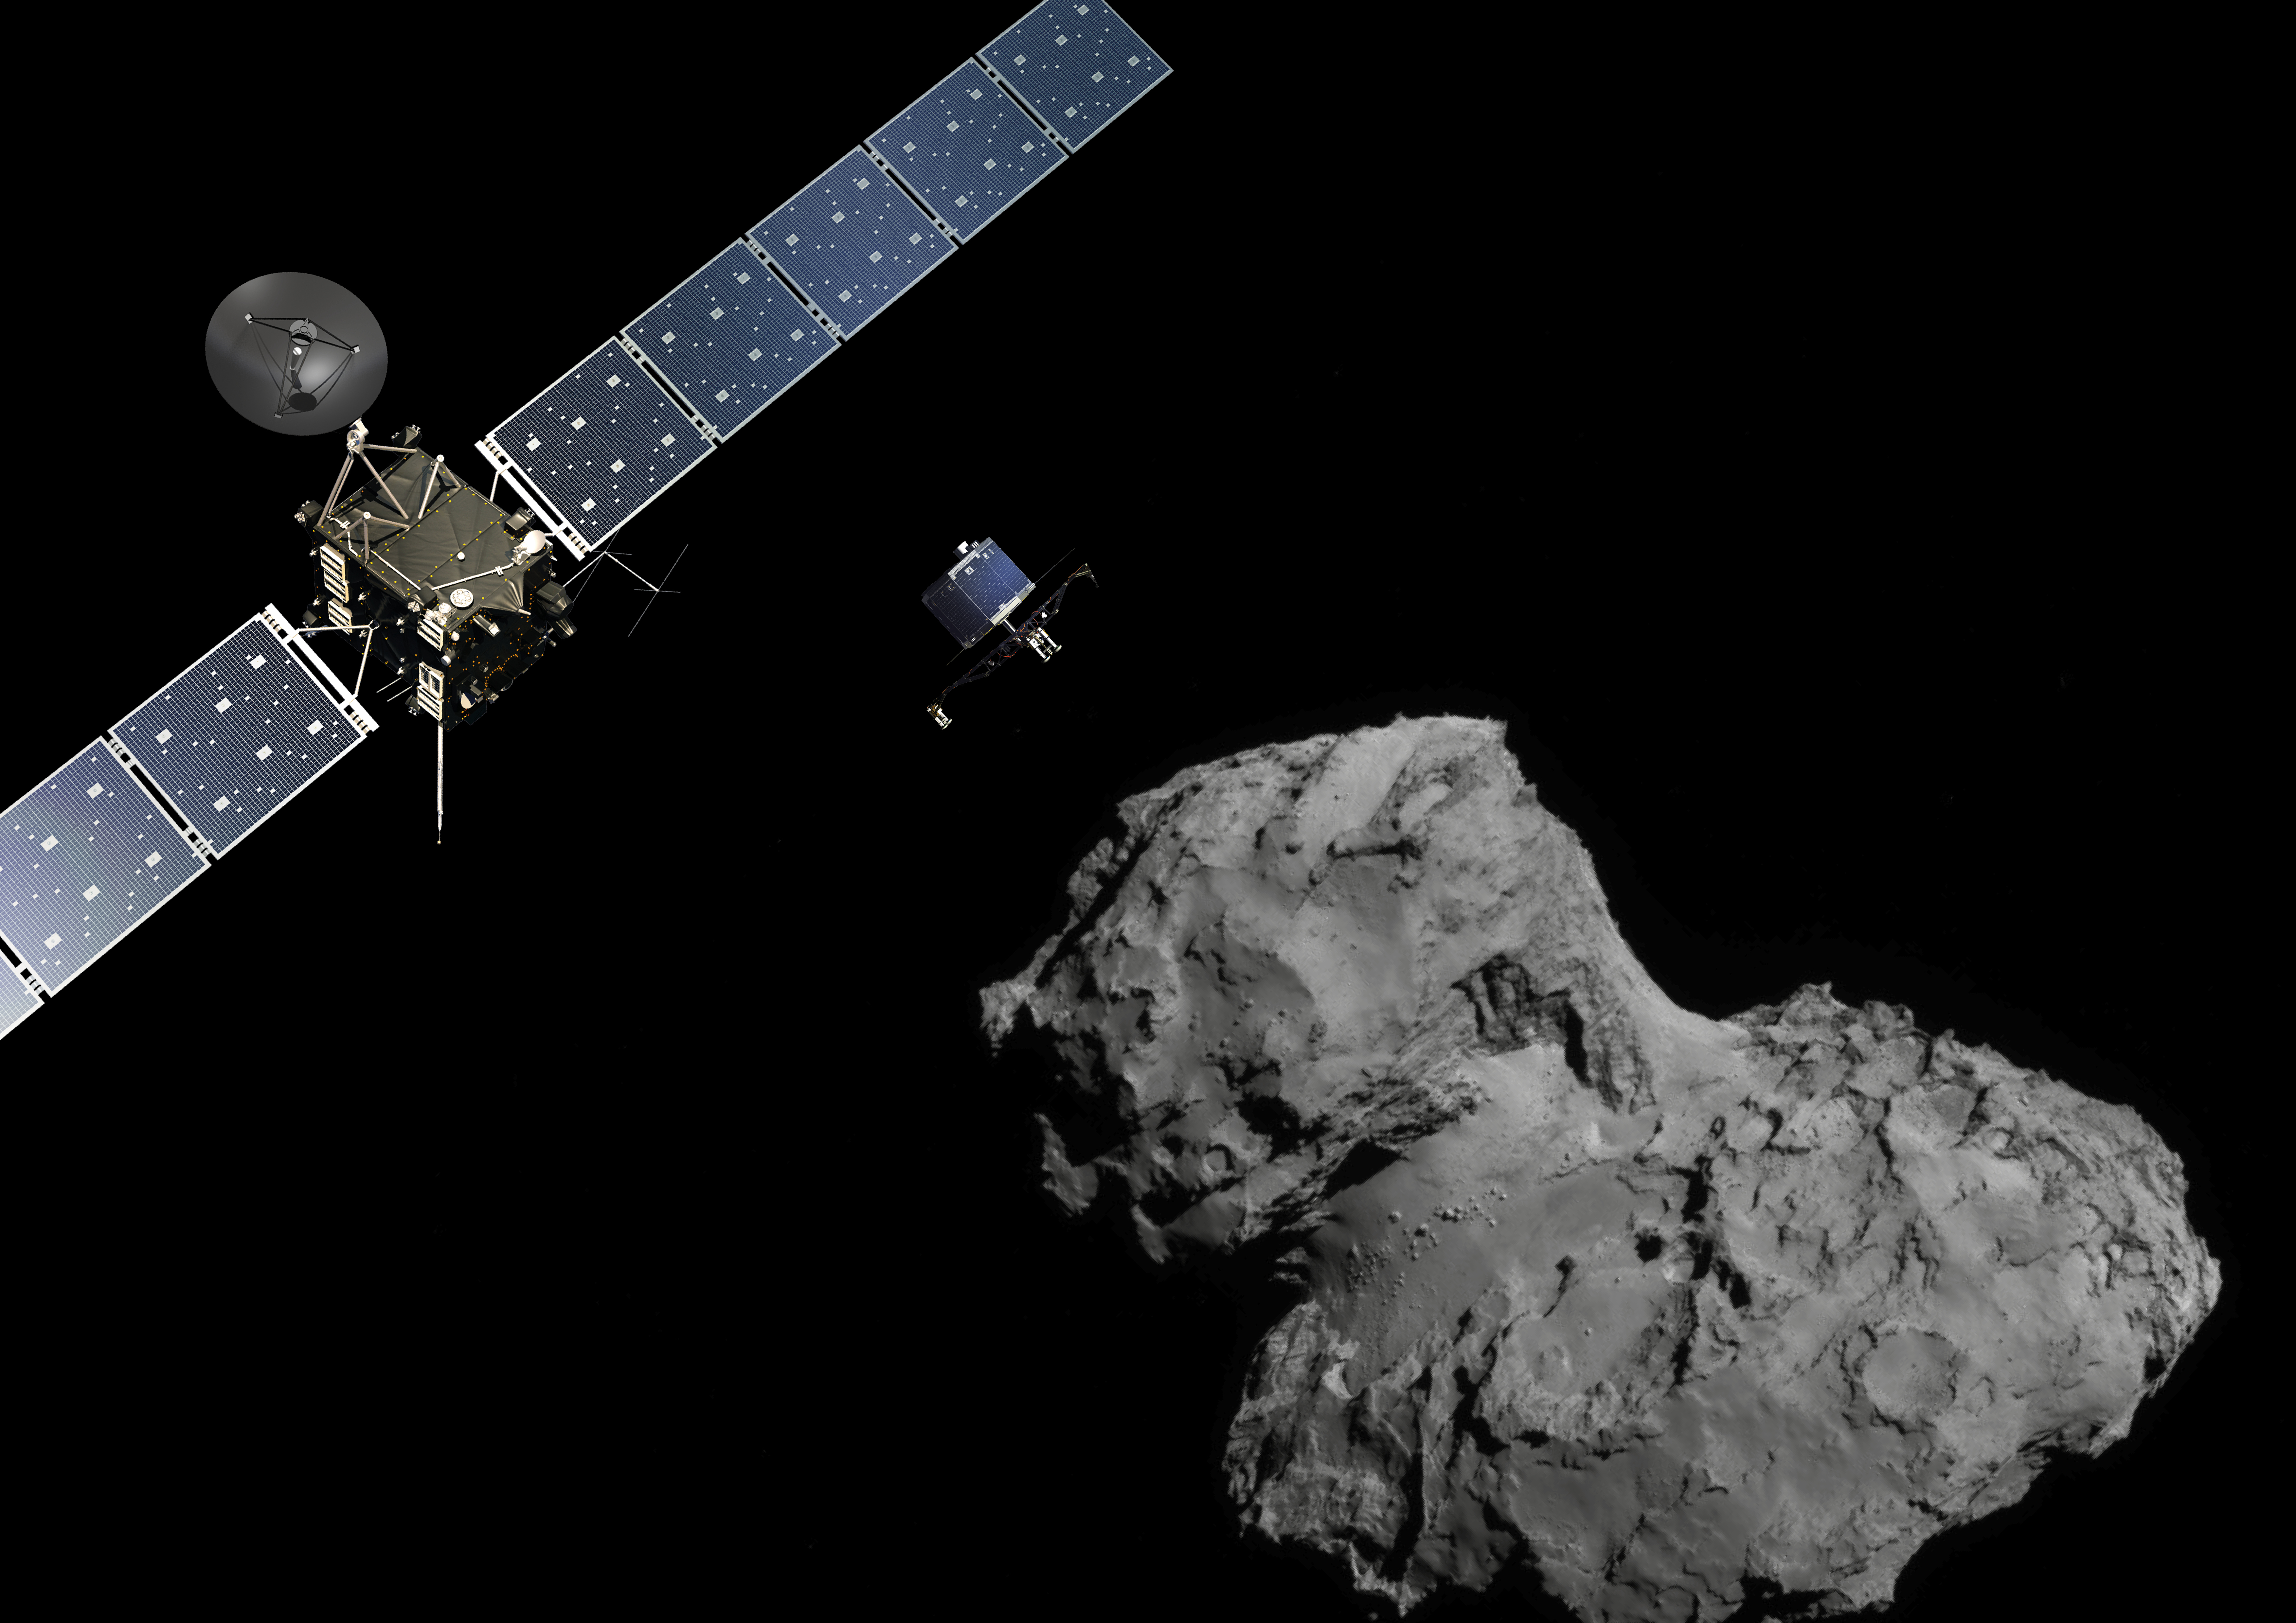 Space in Images - 2014 - 11 - Rosetta at Comet (landscape)